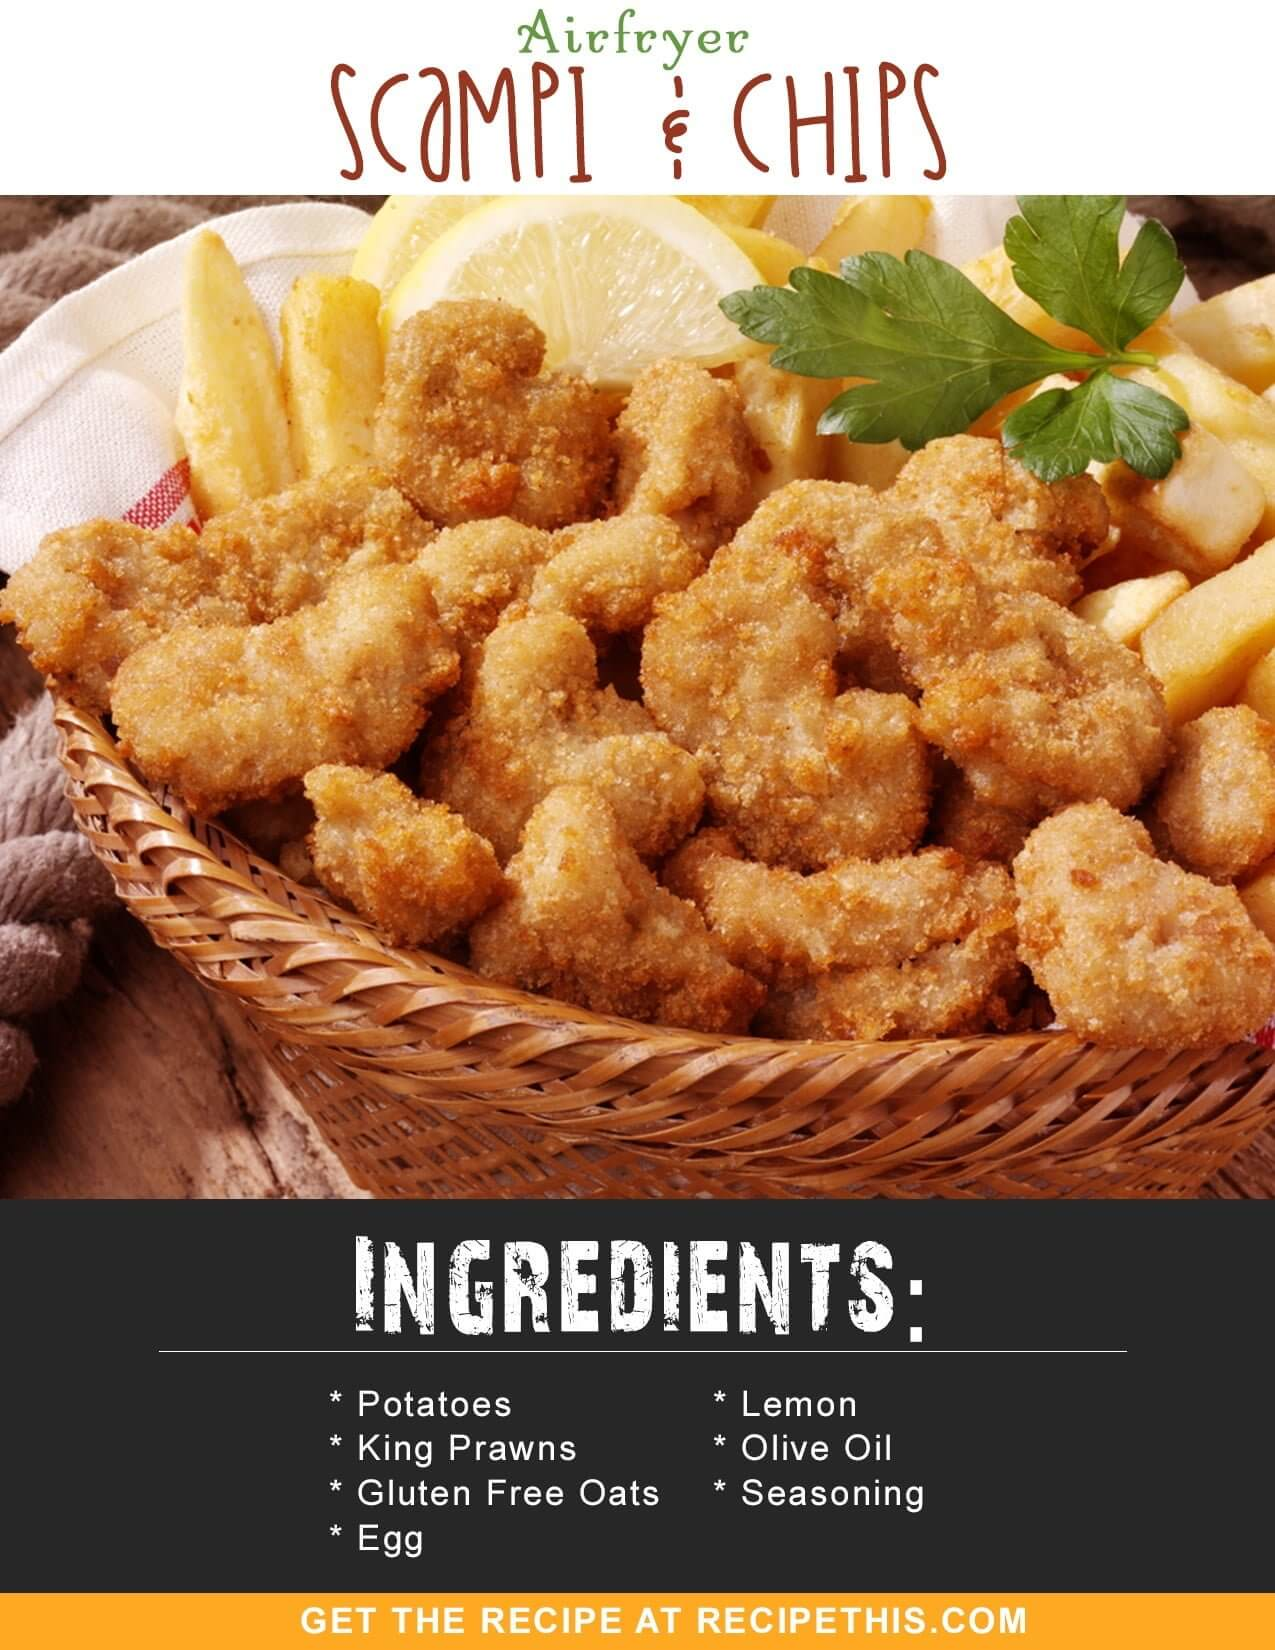 Airfryer Recipes | Airfryer Scampi & Chips Recipe from RecipeThis.com